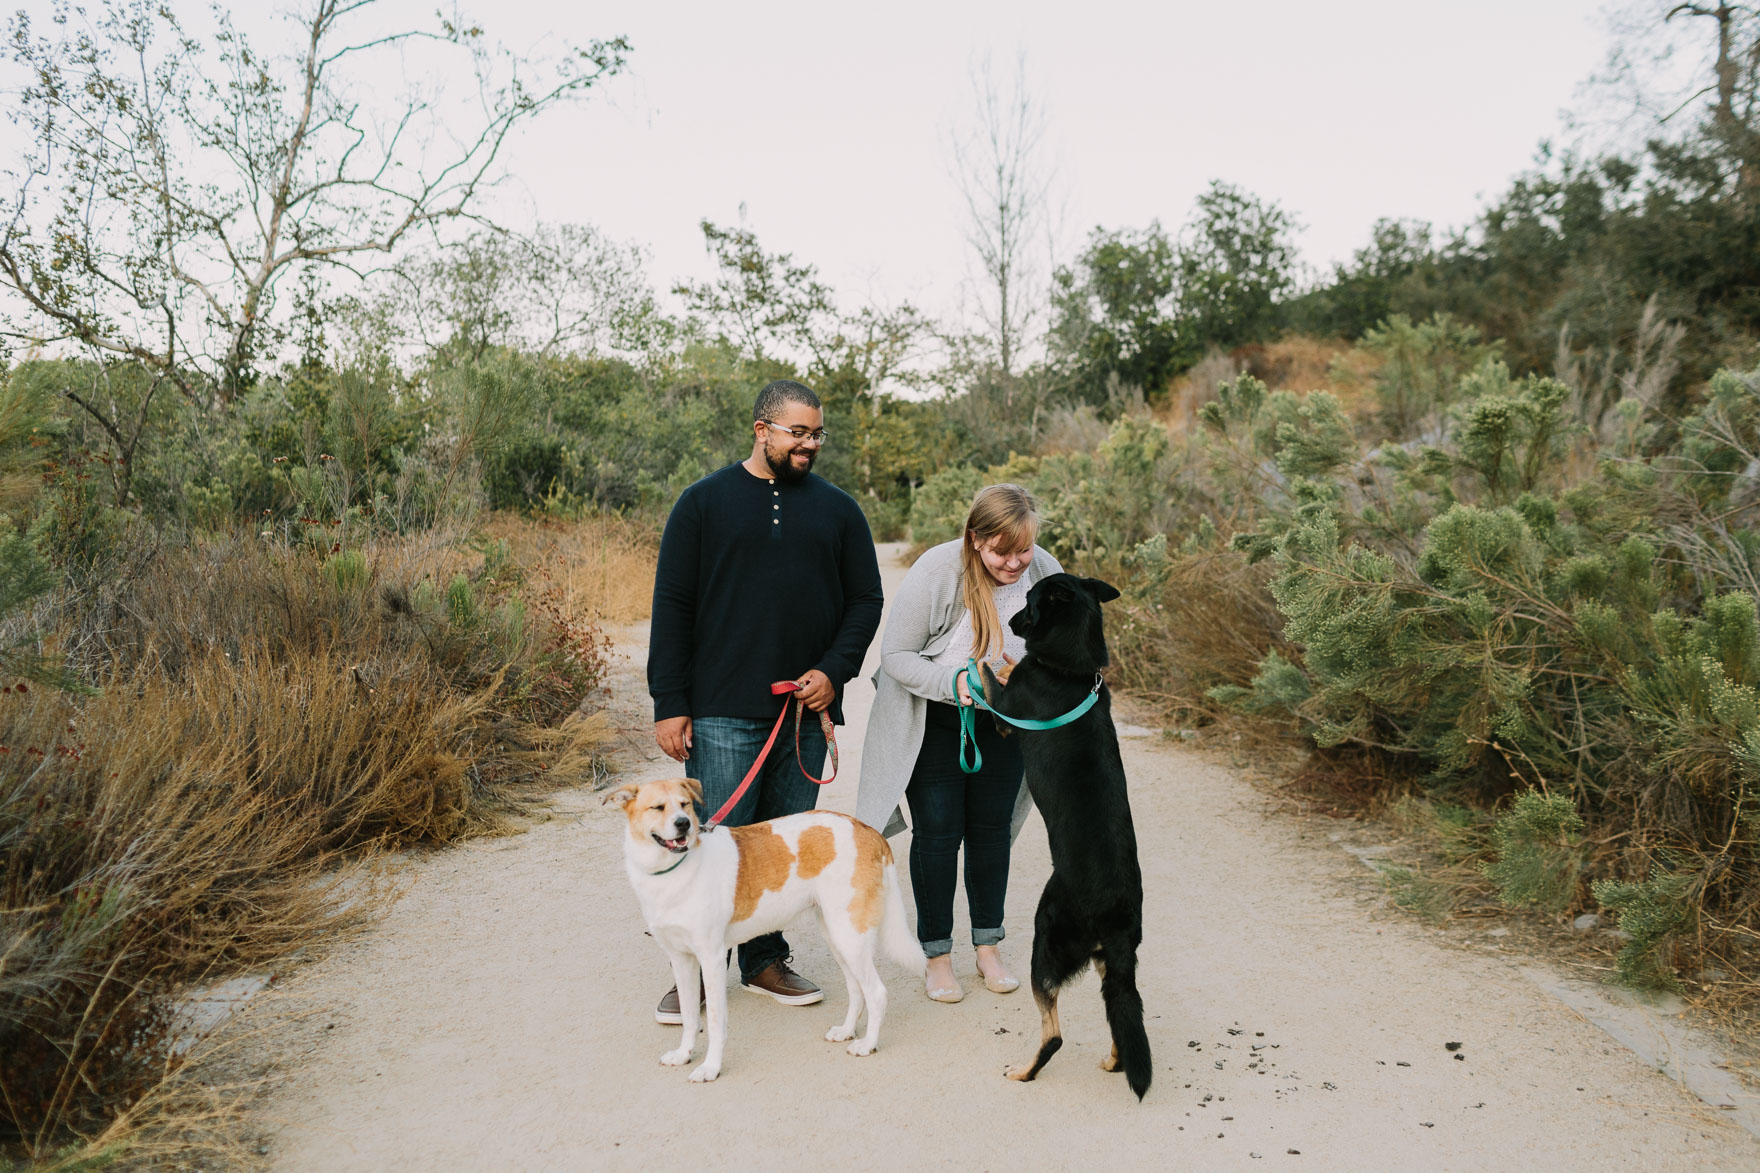 Dog Days of Summer Love – Photo by Let's Frolic Together